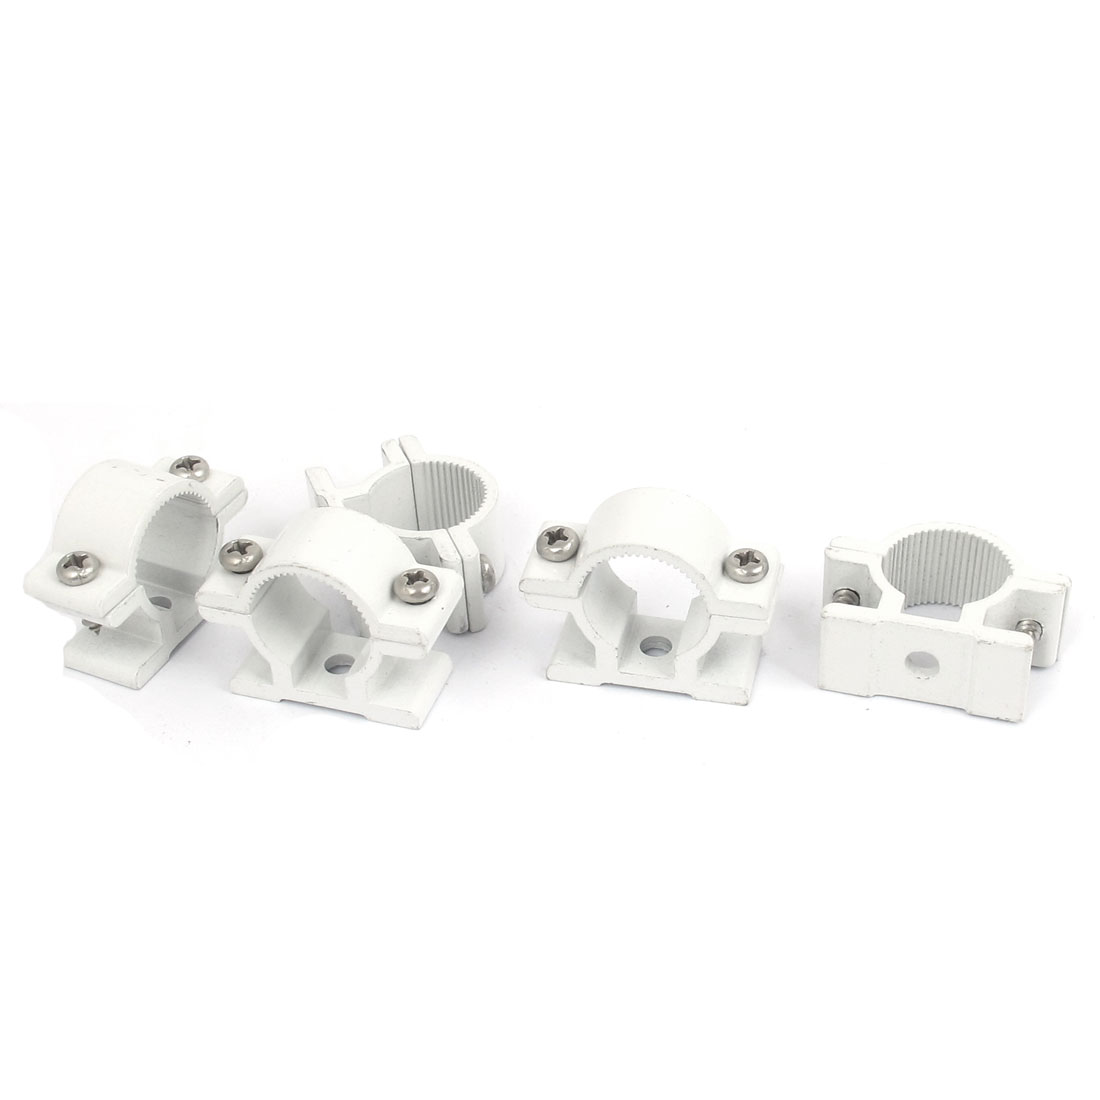 20mm Dia Wall Mounted Aluminium Alloy Pipe Clip Clamp Fastener 5pcs